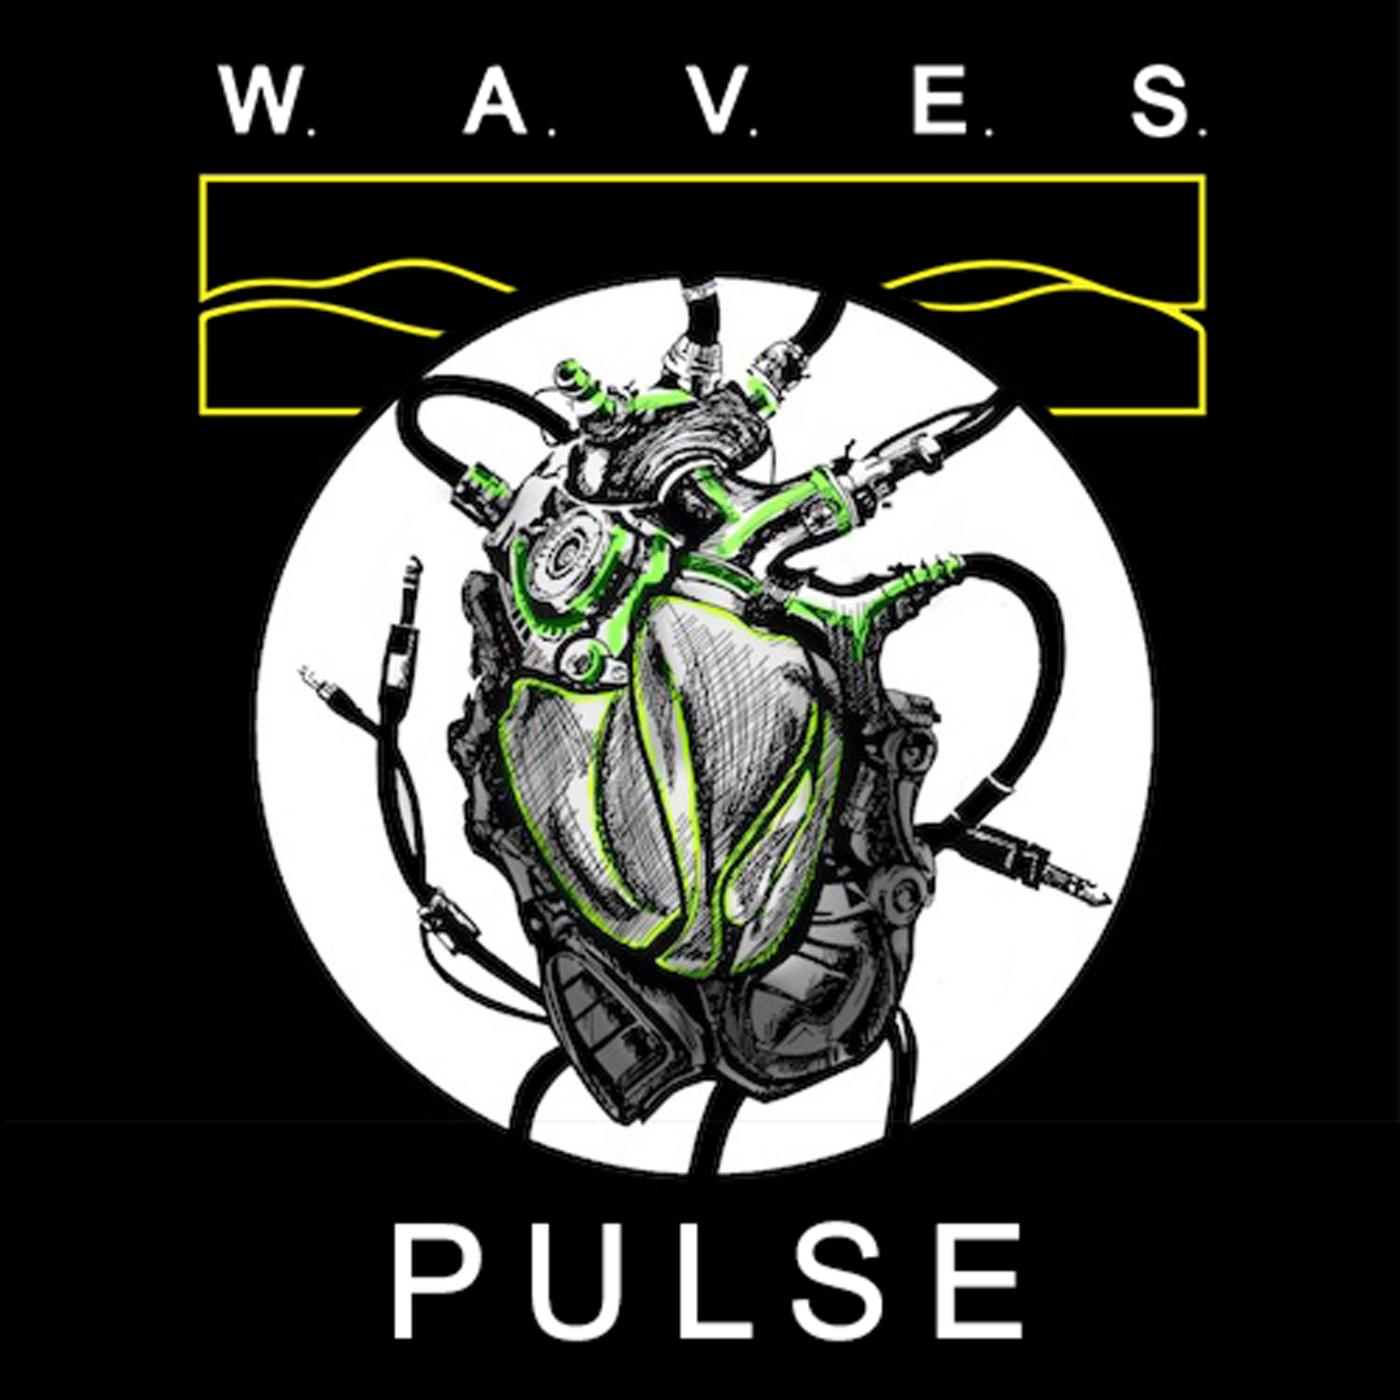 W.A.V.E.S. - Cosmic Distances EP